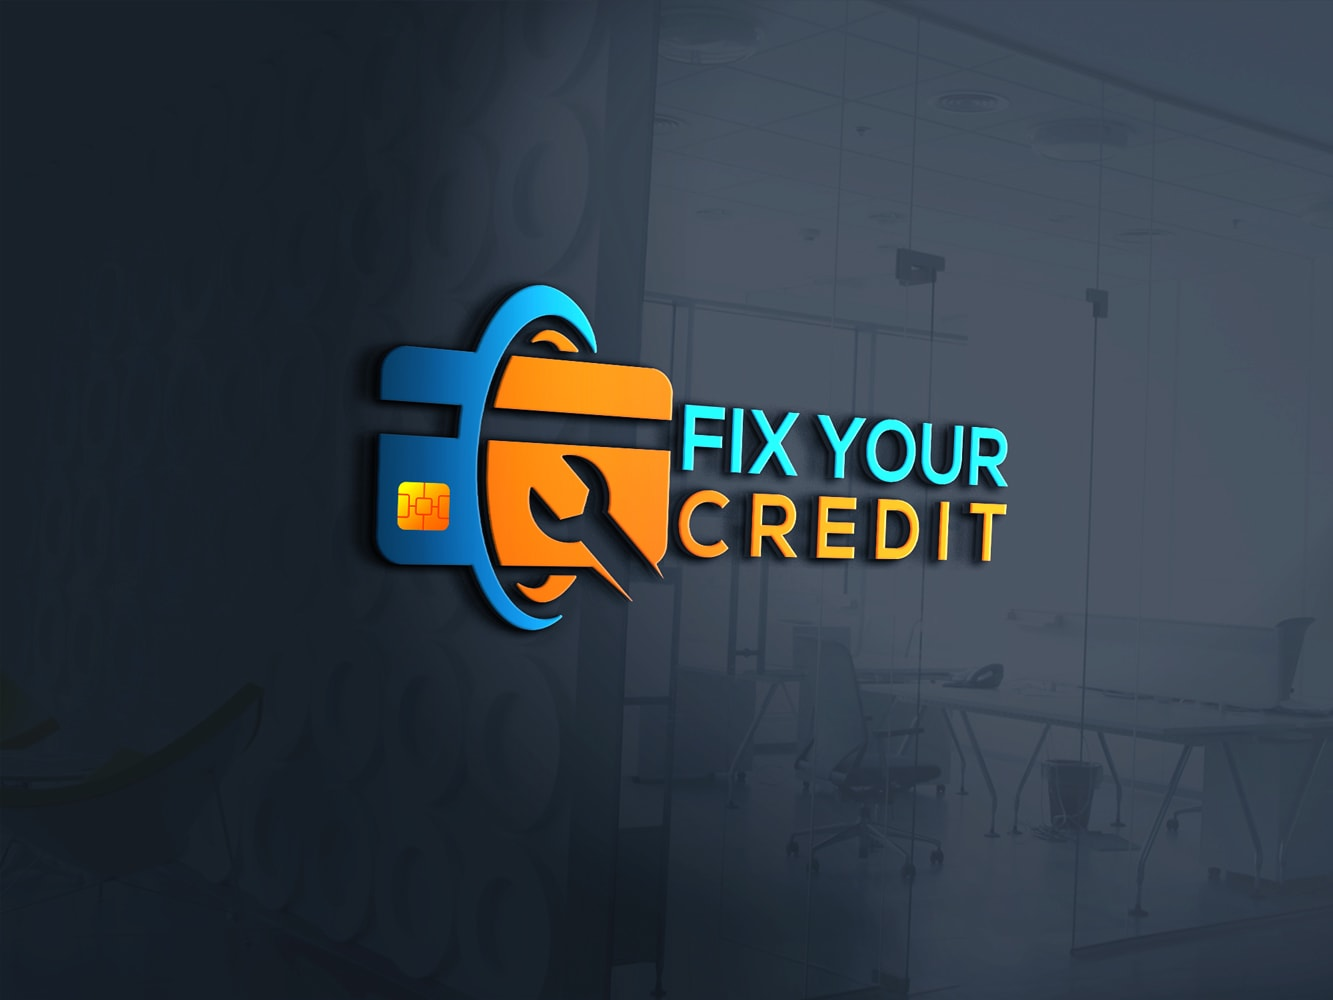 Design Professional Credit Repair Consulting And Financial Logo By Sabbirgd